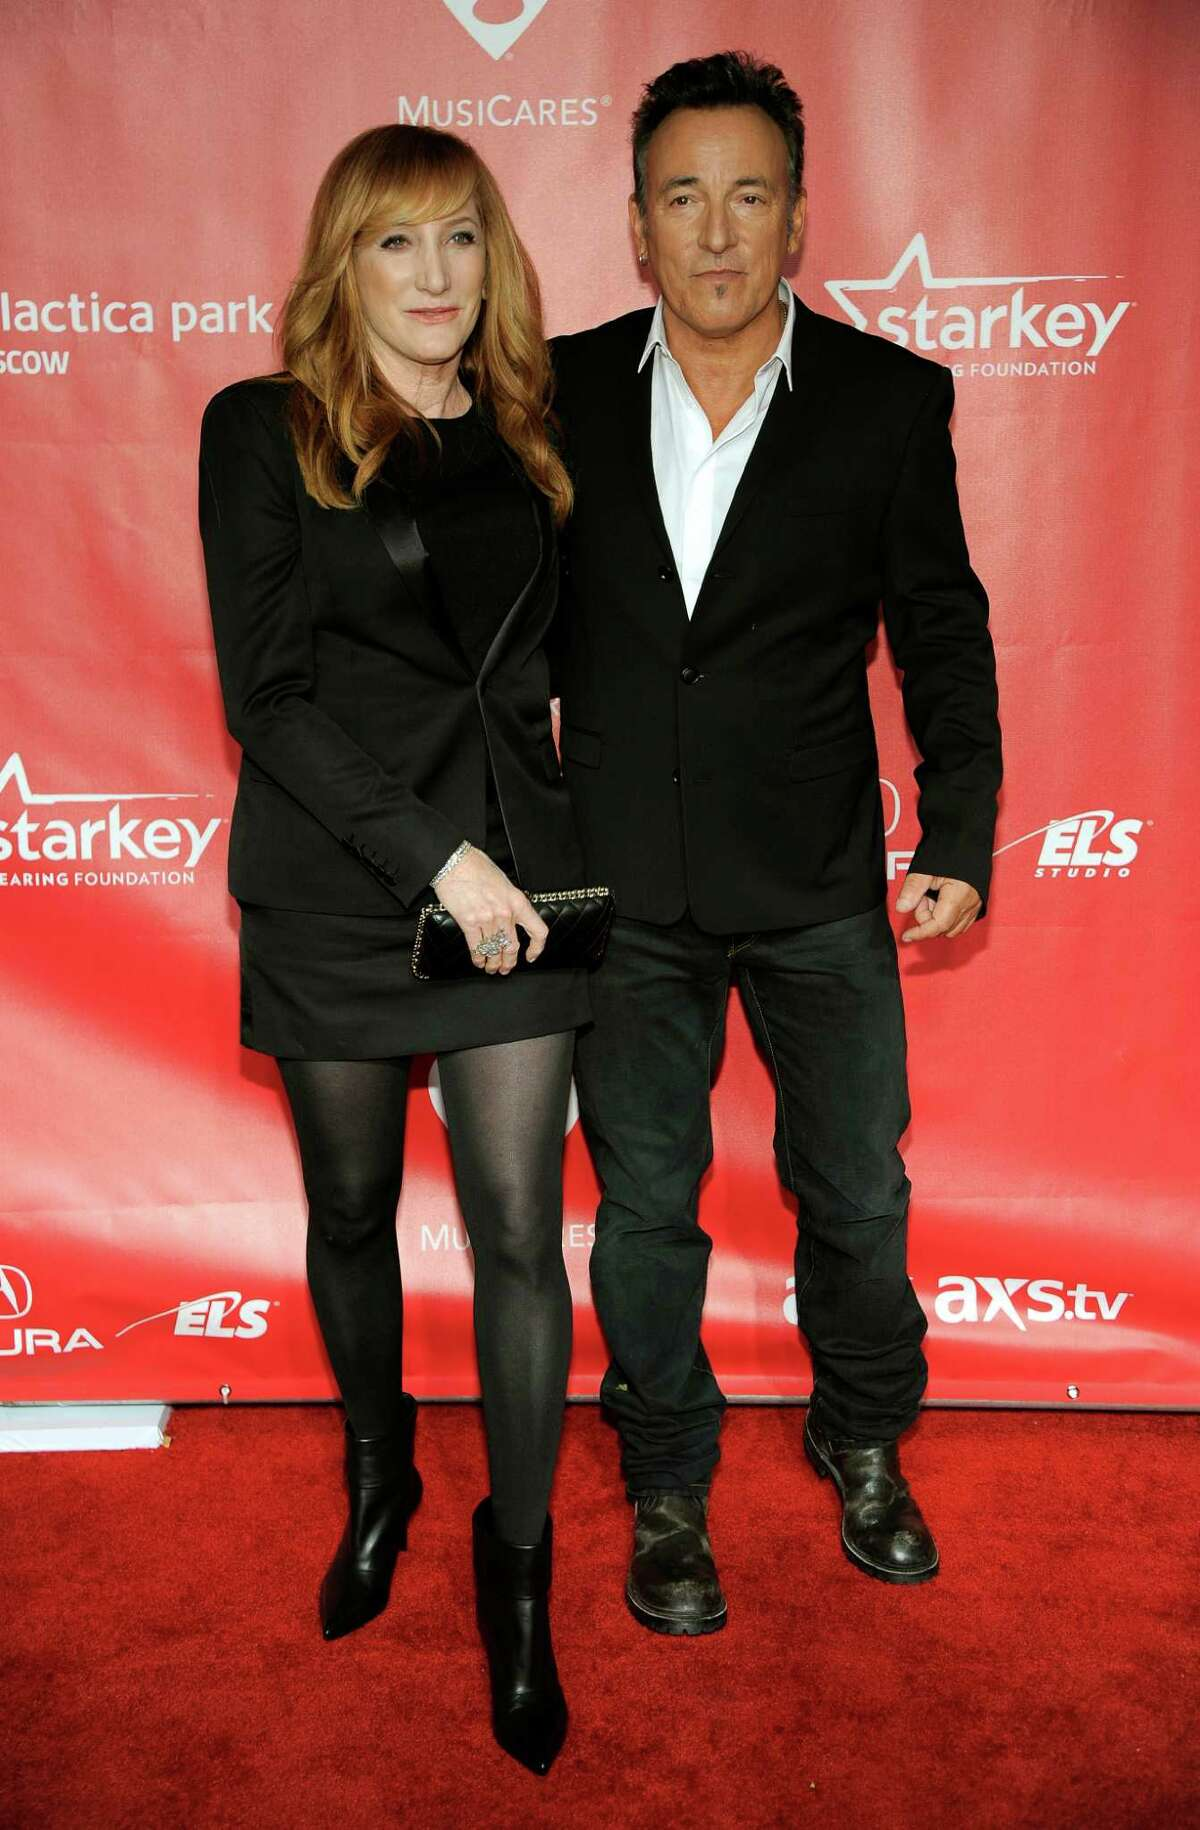 Honoree Bruce Springsteen, right, and Patti Scialfa arrive at Springsteen's MusiCares Person of the Year tribute at the Los Angeles Convention Center on Friday Feb. 8, 2013, in Los Angeles. (Photo by Chris Pizzello/Invision/AP)